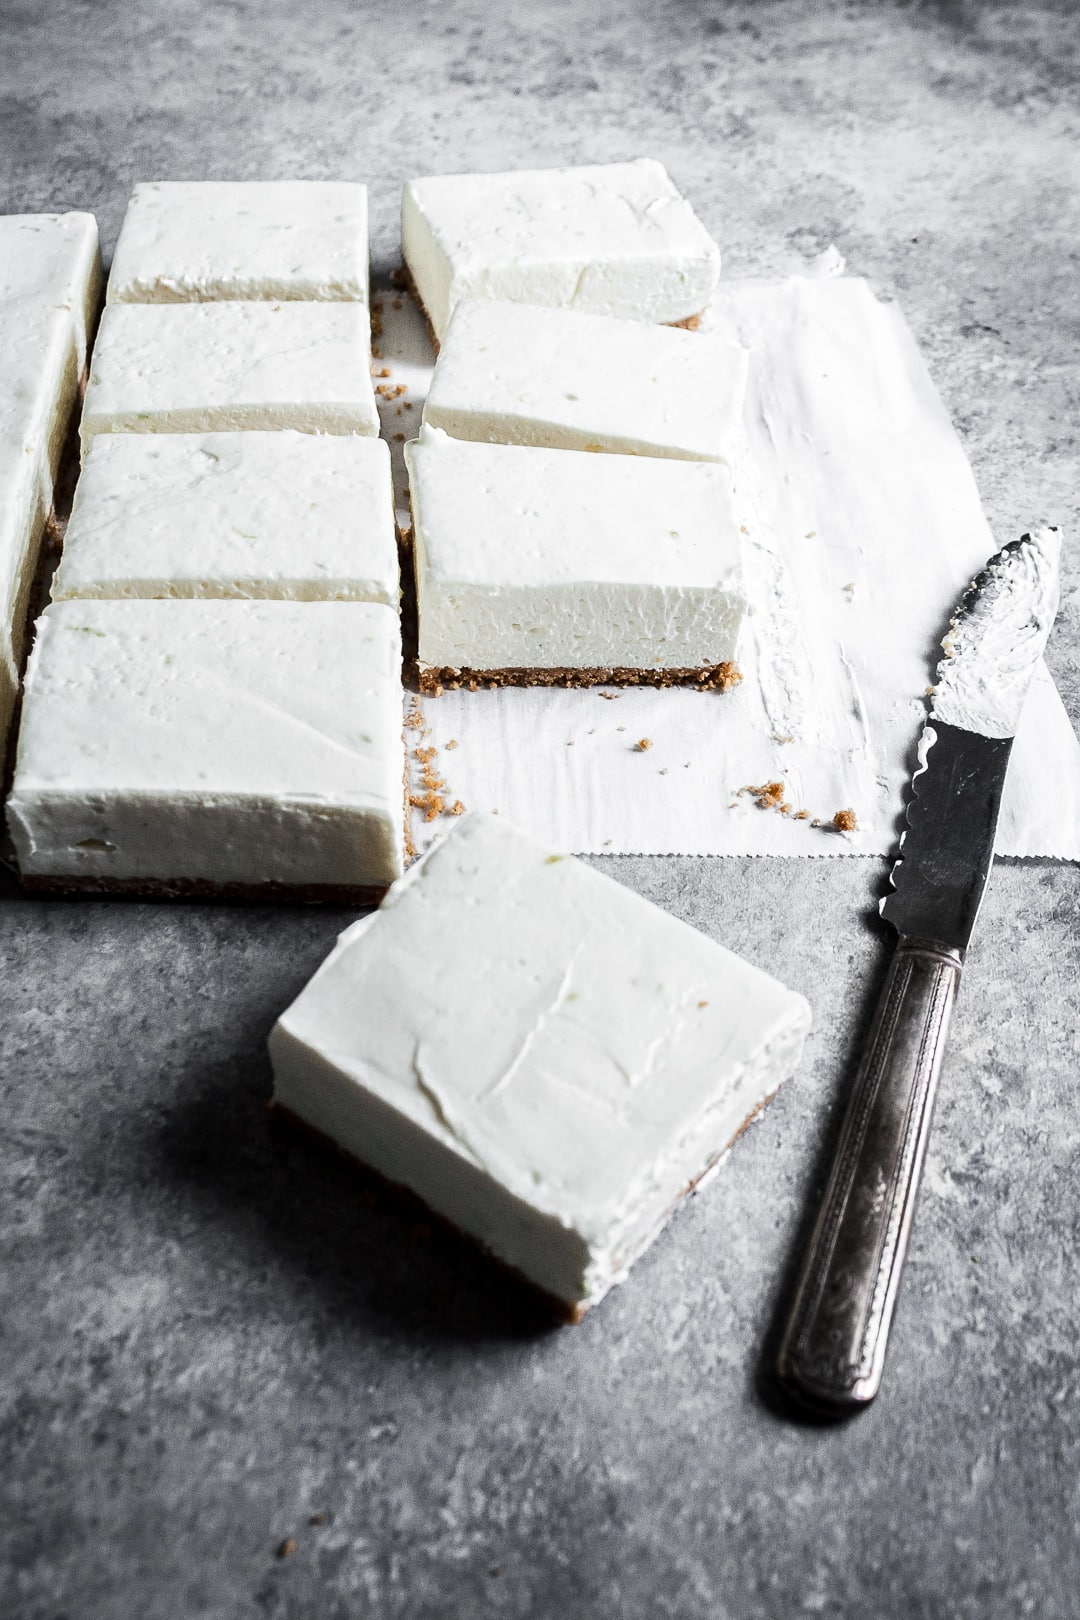 45 degree angle view of sliced cheesecake bars on parchment paper squares on a grey background with a vintage knife nearby